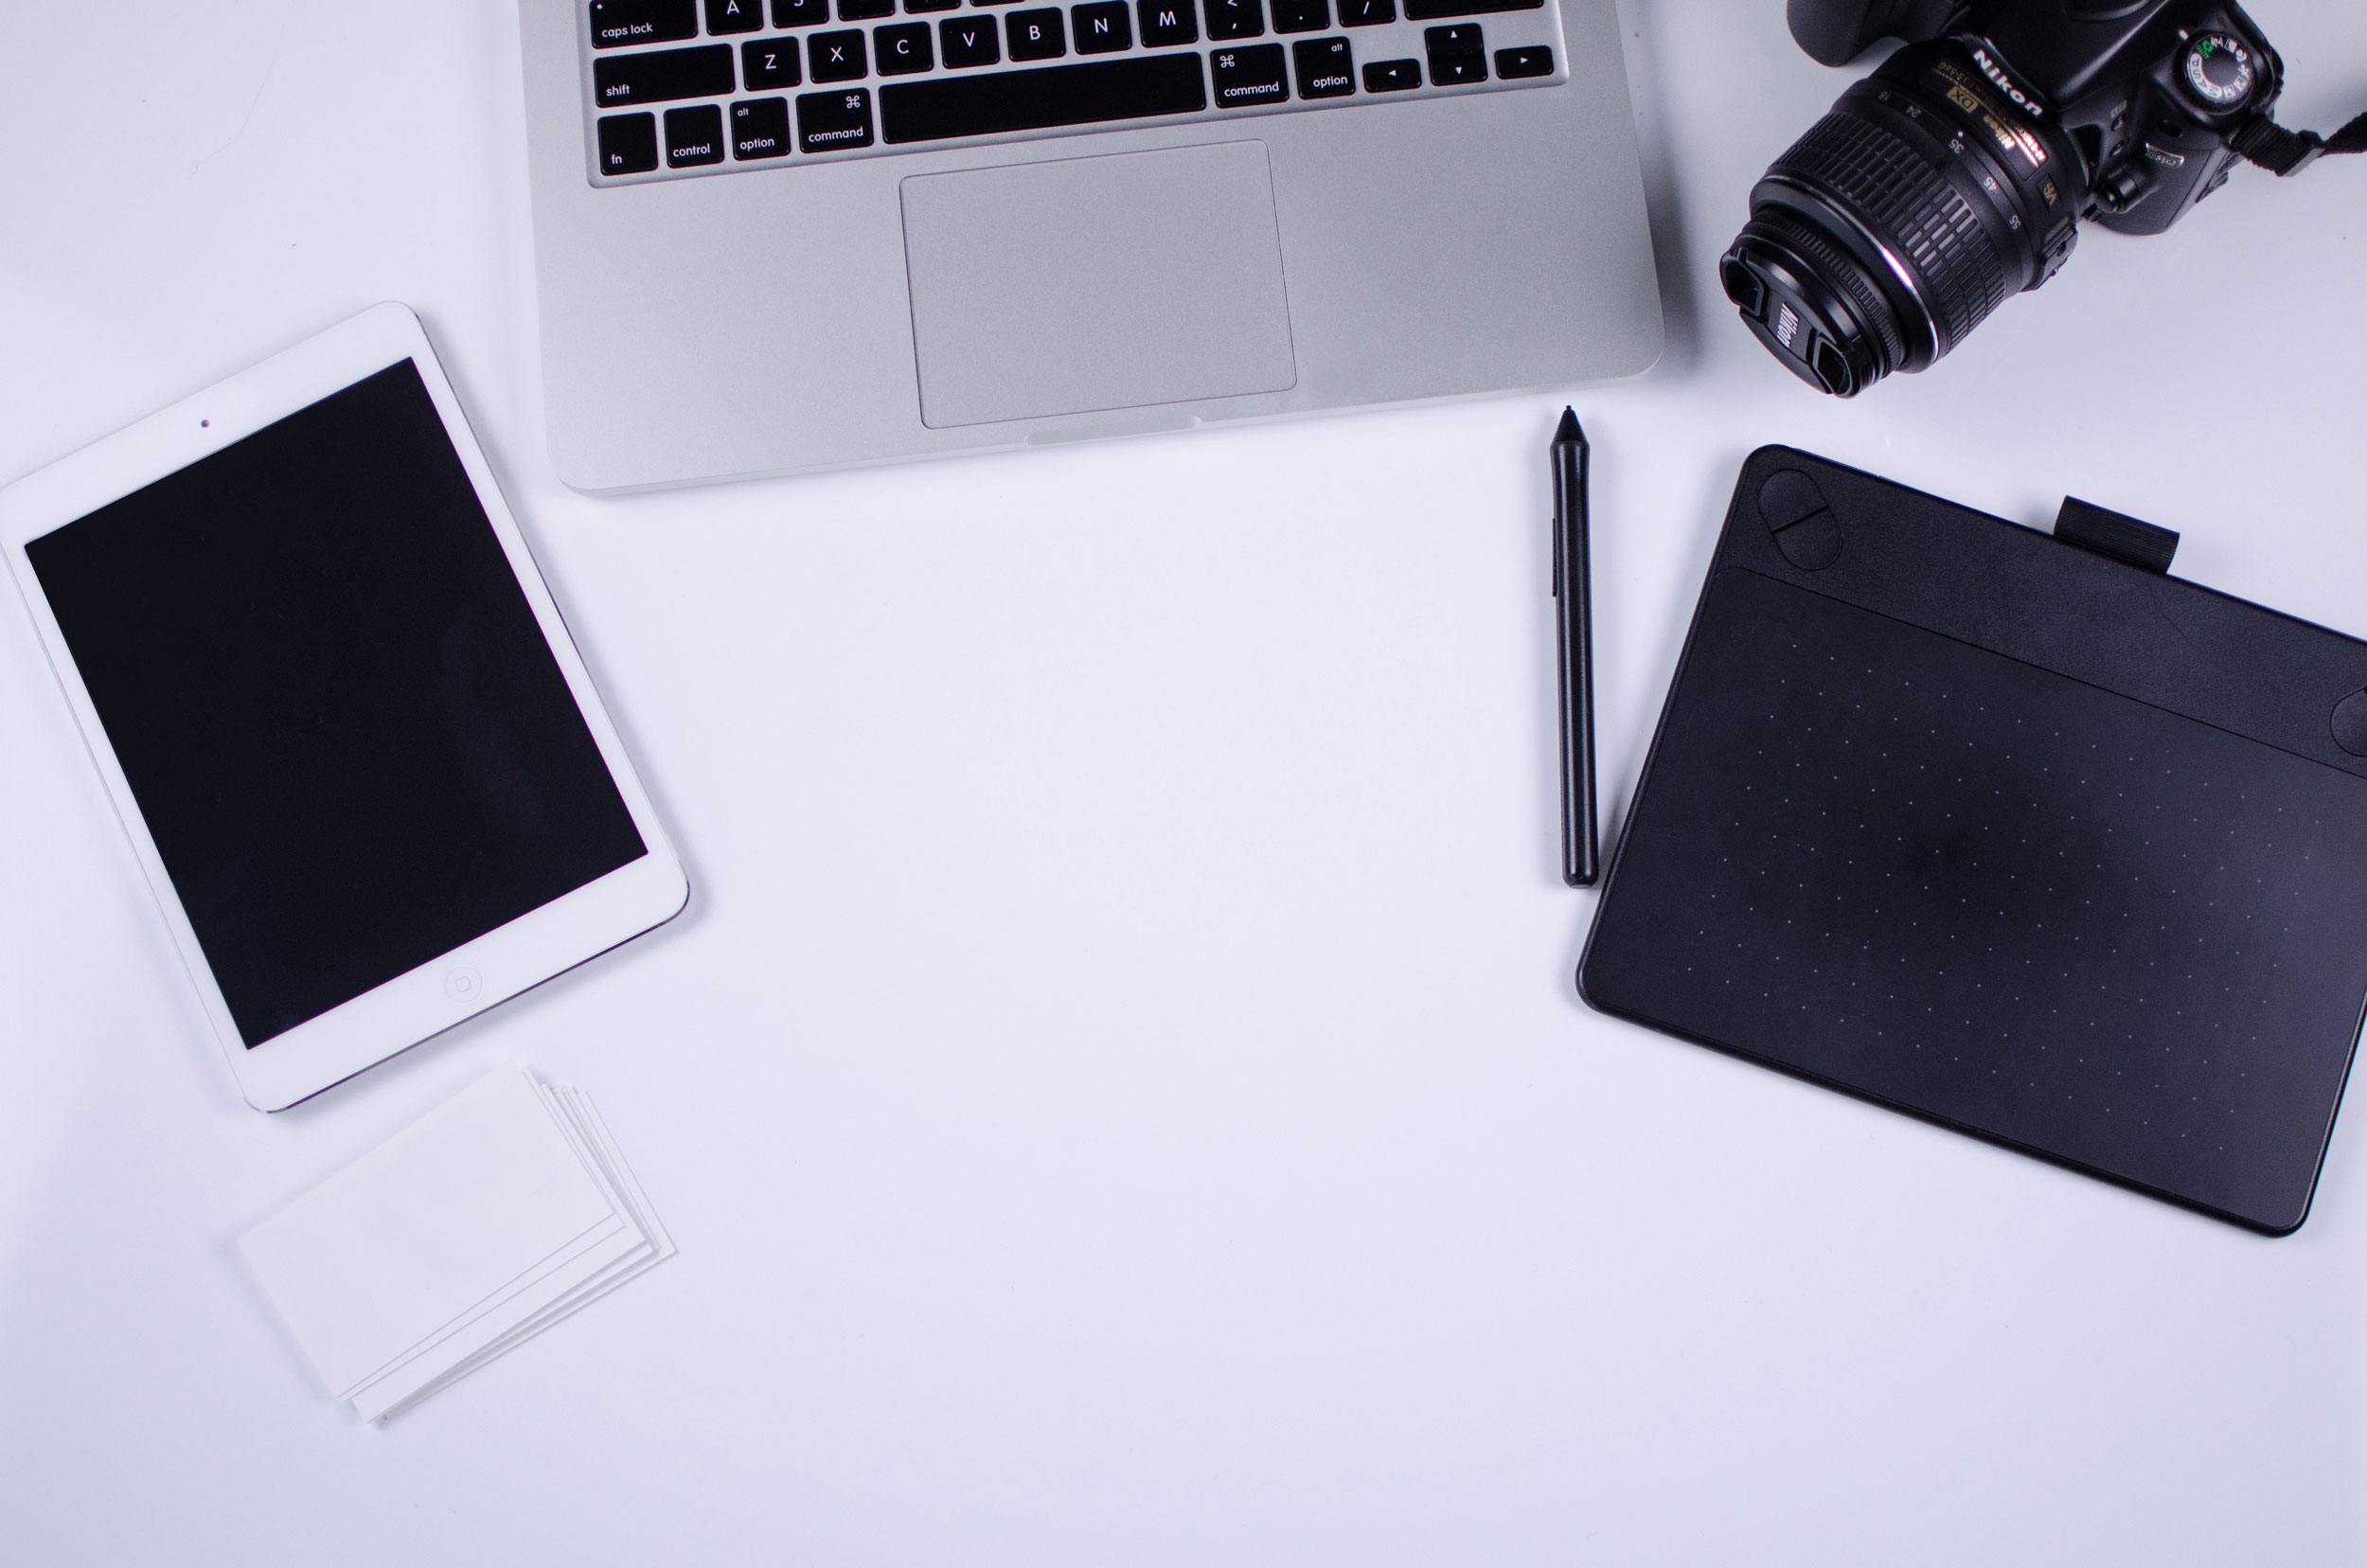 a tablet, laptop, camera, and notebook arranged on a desk